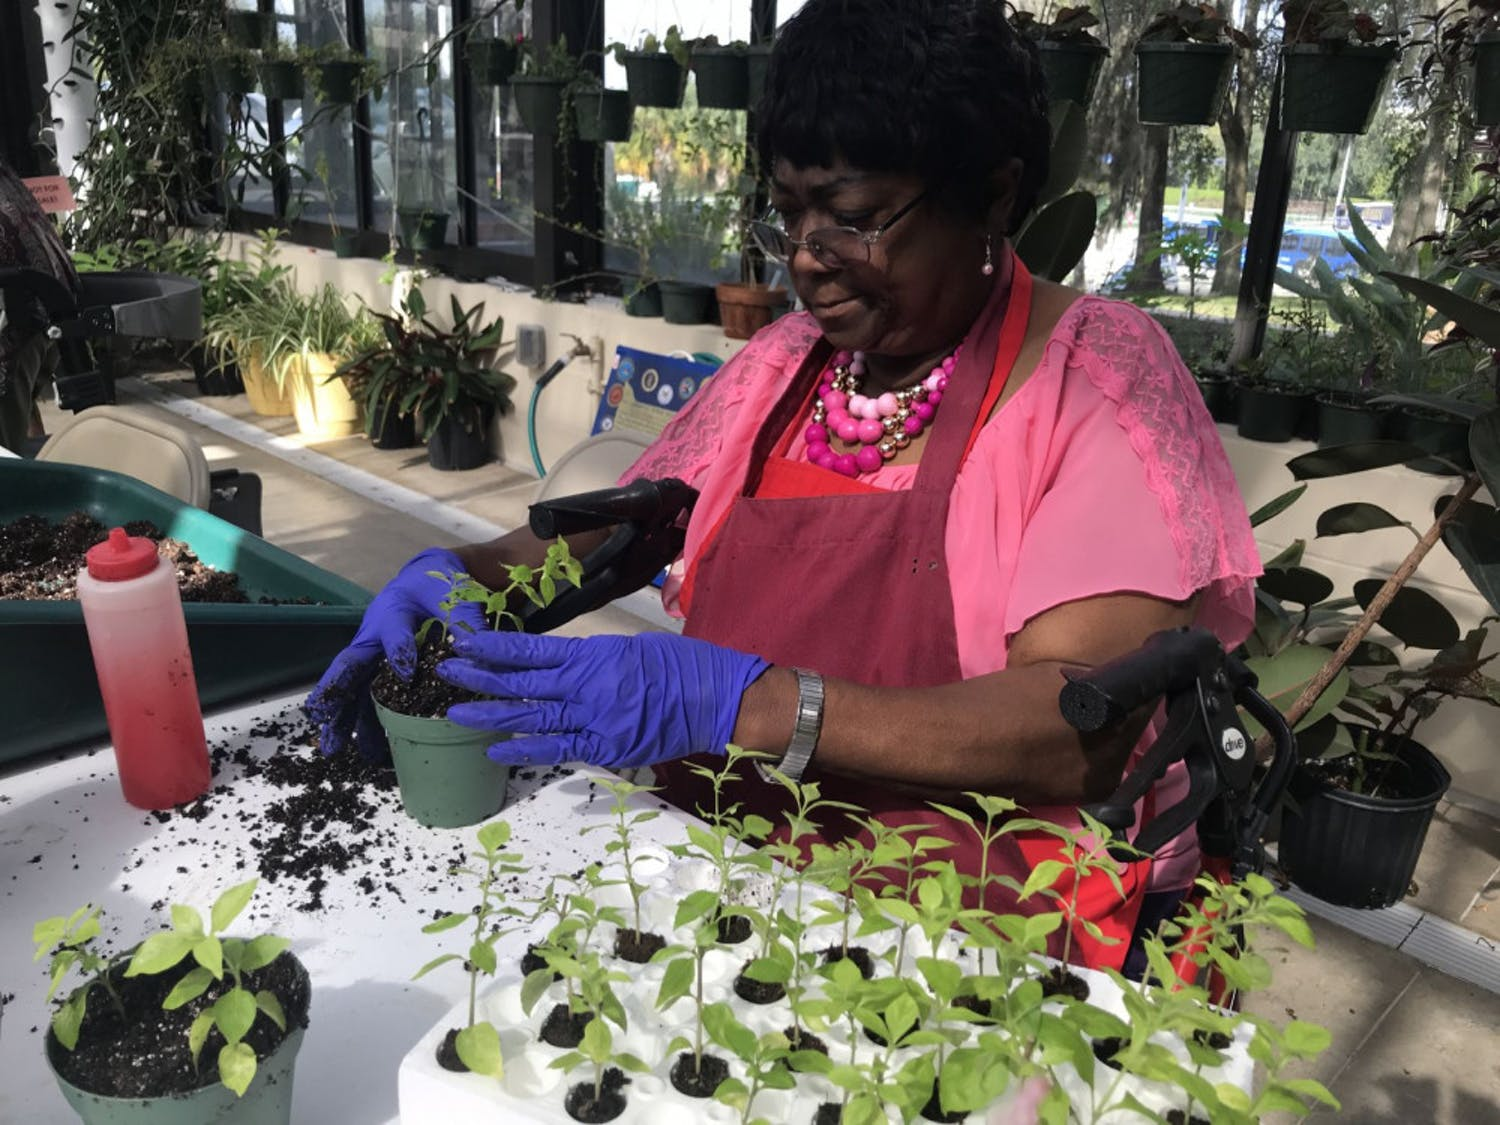 Dessie Robinson, a United States veteran and regular attendee of horticulture therapy, transfers young rabbit ear seedlings into pots. Robinson has attended the program for two semesters after hearing about it from the social work department at the VA.